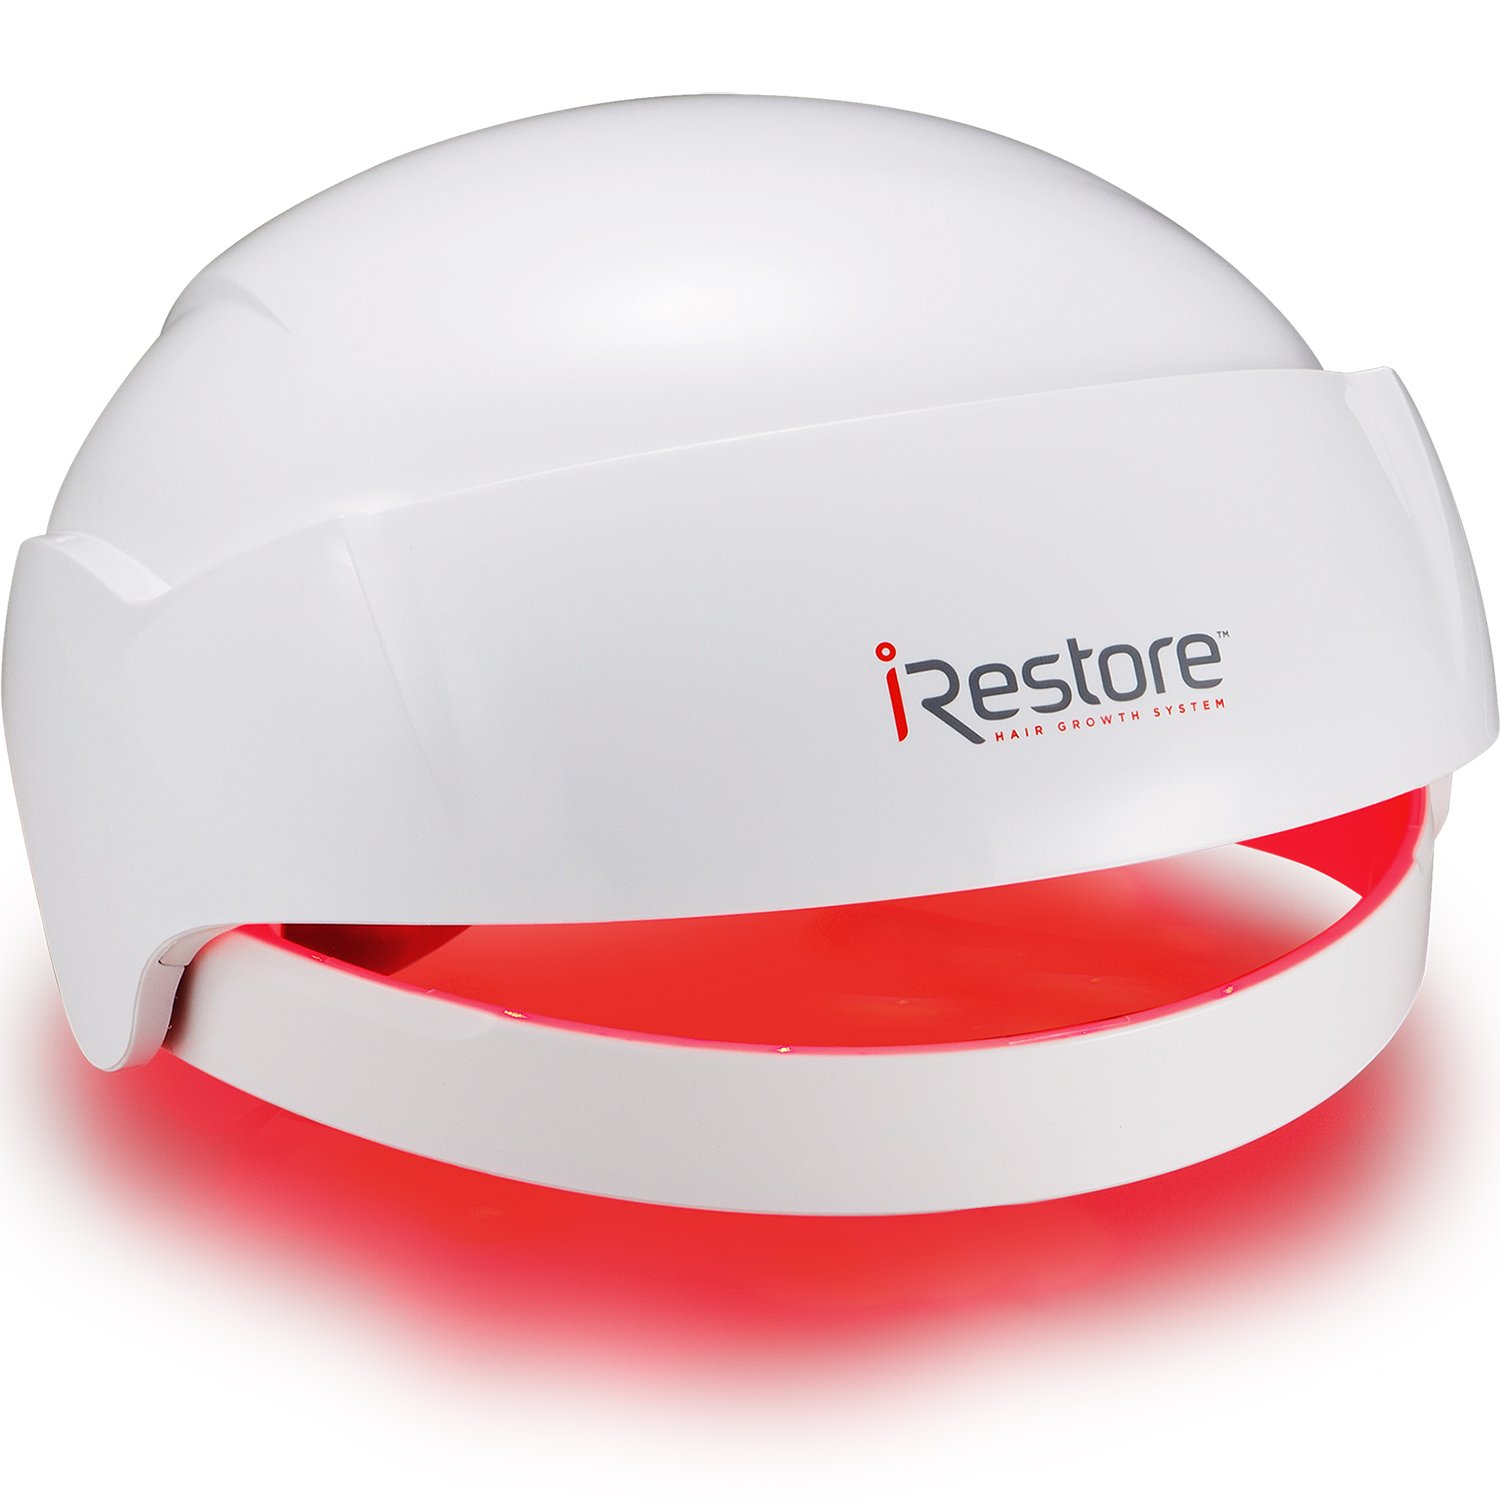 iRestore Laser Hair Growth System - Essential - Laser Cap FDA Cleared Hair Loss Treatments: Hair Regrowth for Men and Women with Thinning Hair - Laser Helmet Laser Comb Hair Growth Products Treatment by iRestore